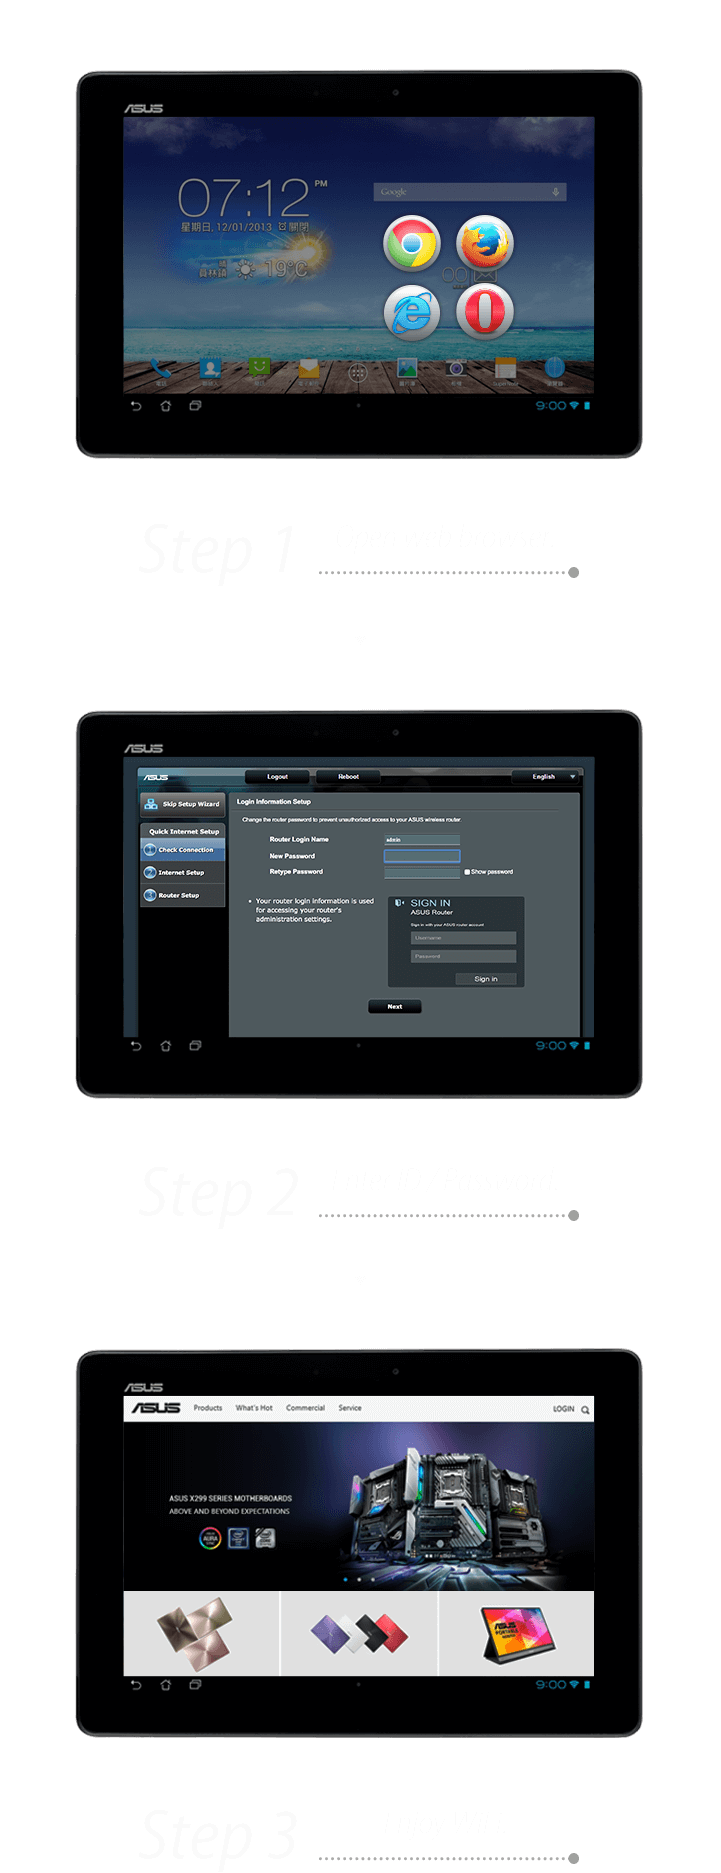 3-step easy setup